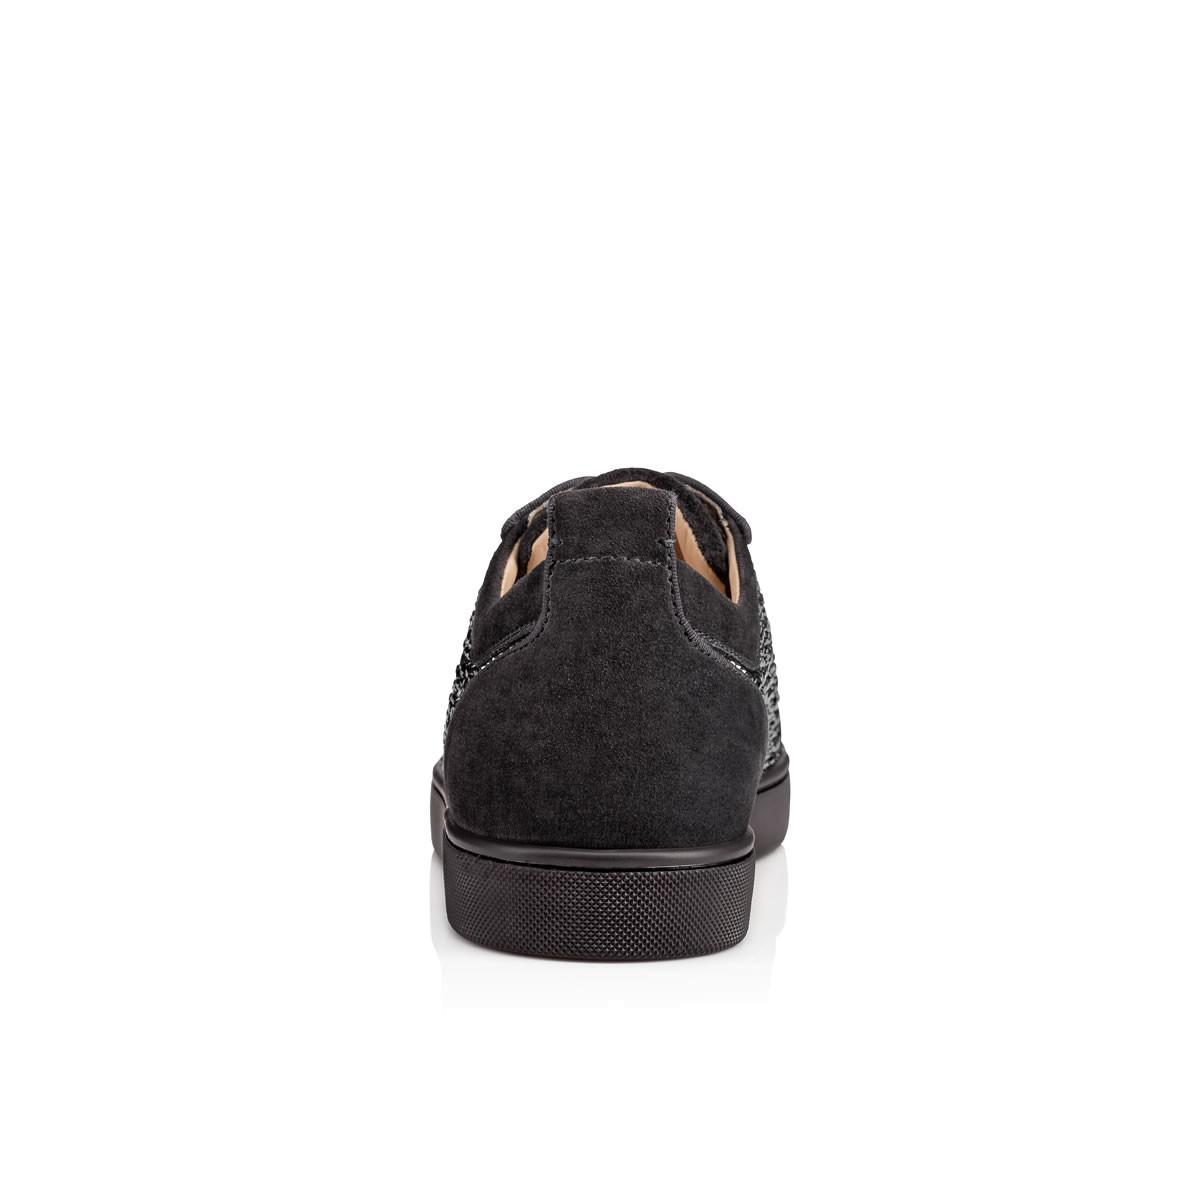 37f06520ac4a Lyst - Christian Louboutin Louis Junior Strass Men s Flat in Black ...